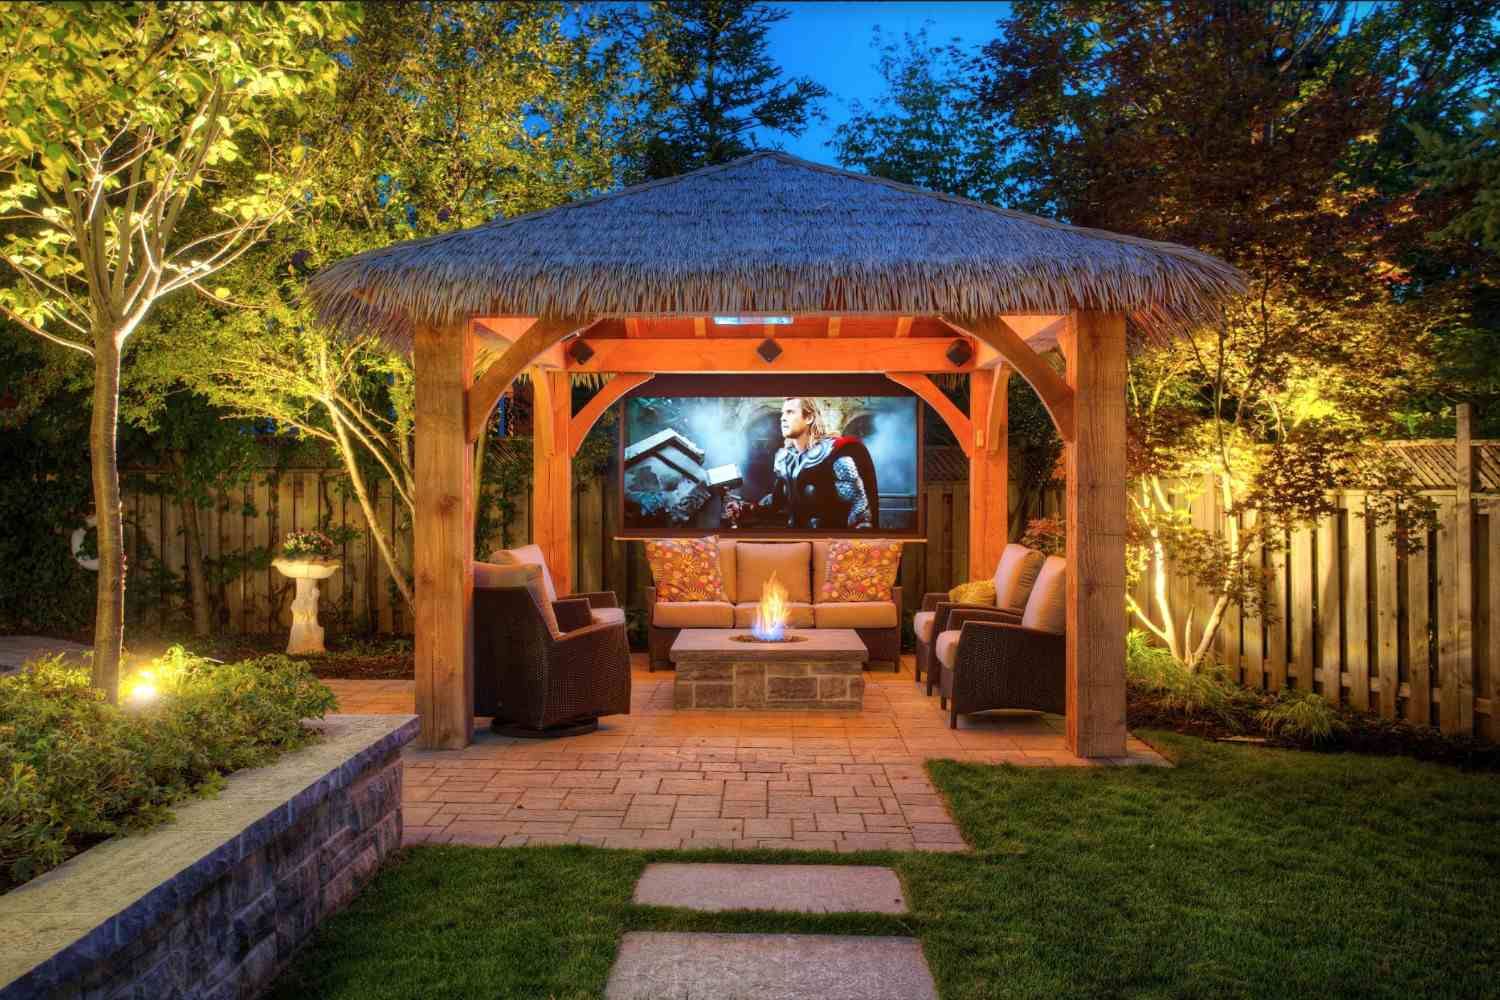 A Charming Backyard Gazebo